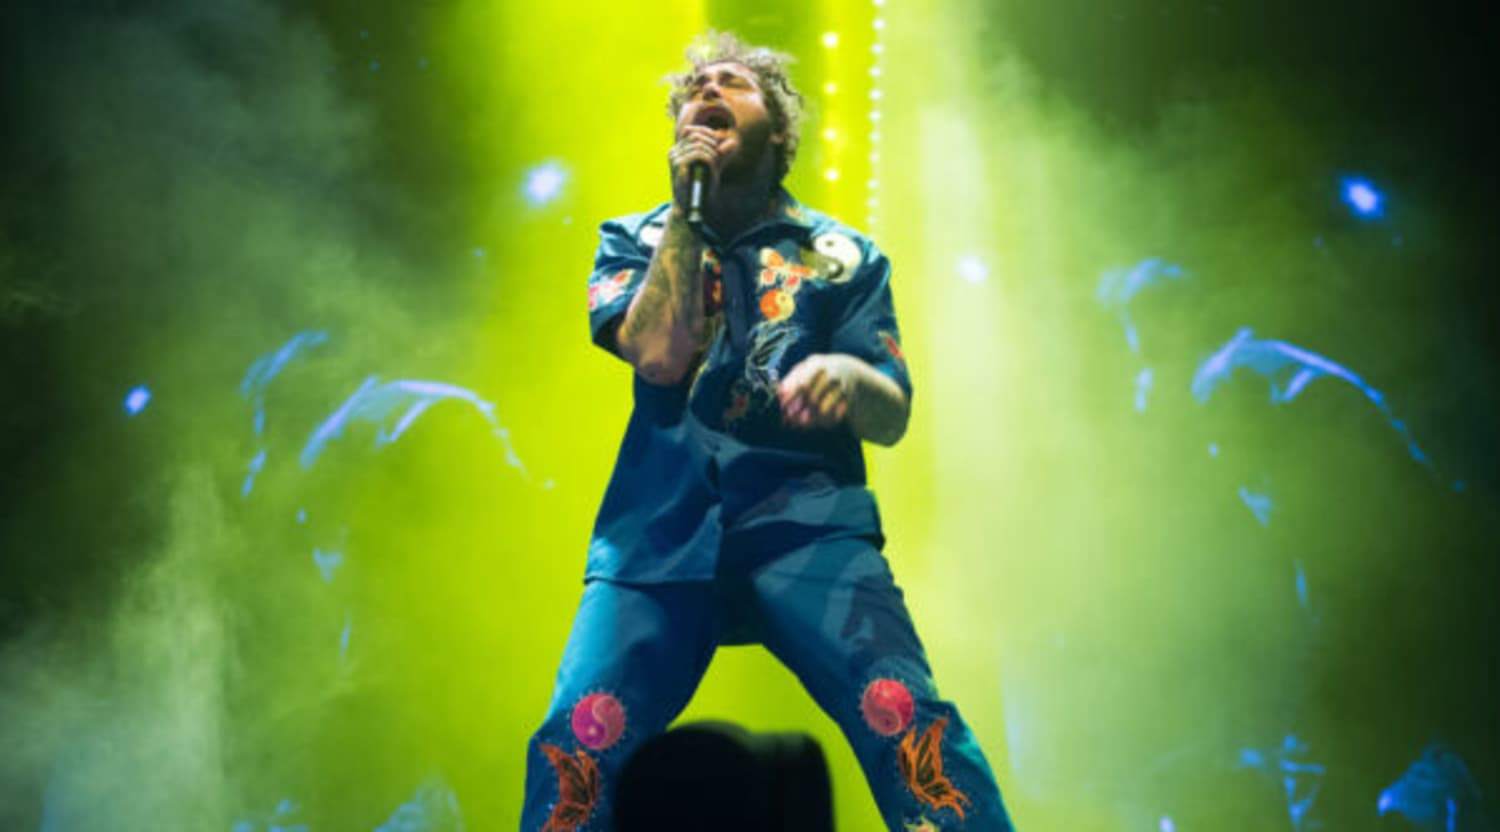 Post Malone Tickets - Post Malone Concert Tickets and Tour